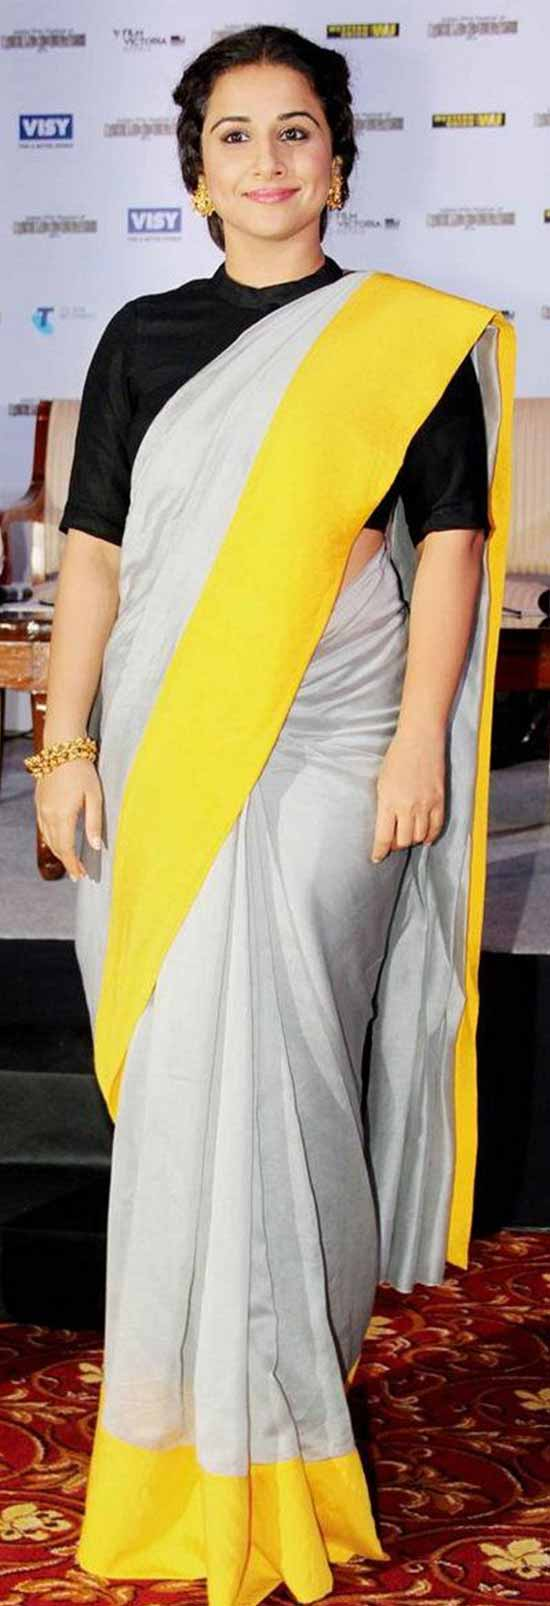 Vidya-Balan-Plane-Cream-Saree-And-Yellow-Boeder-With-Black-Blouse